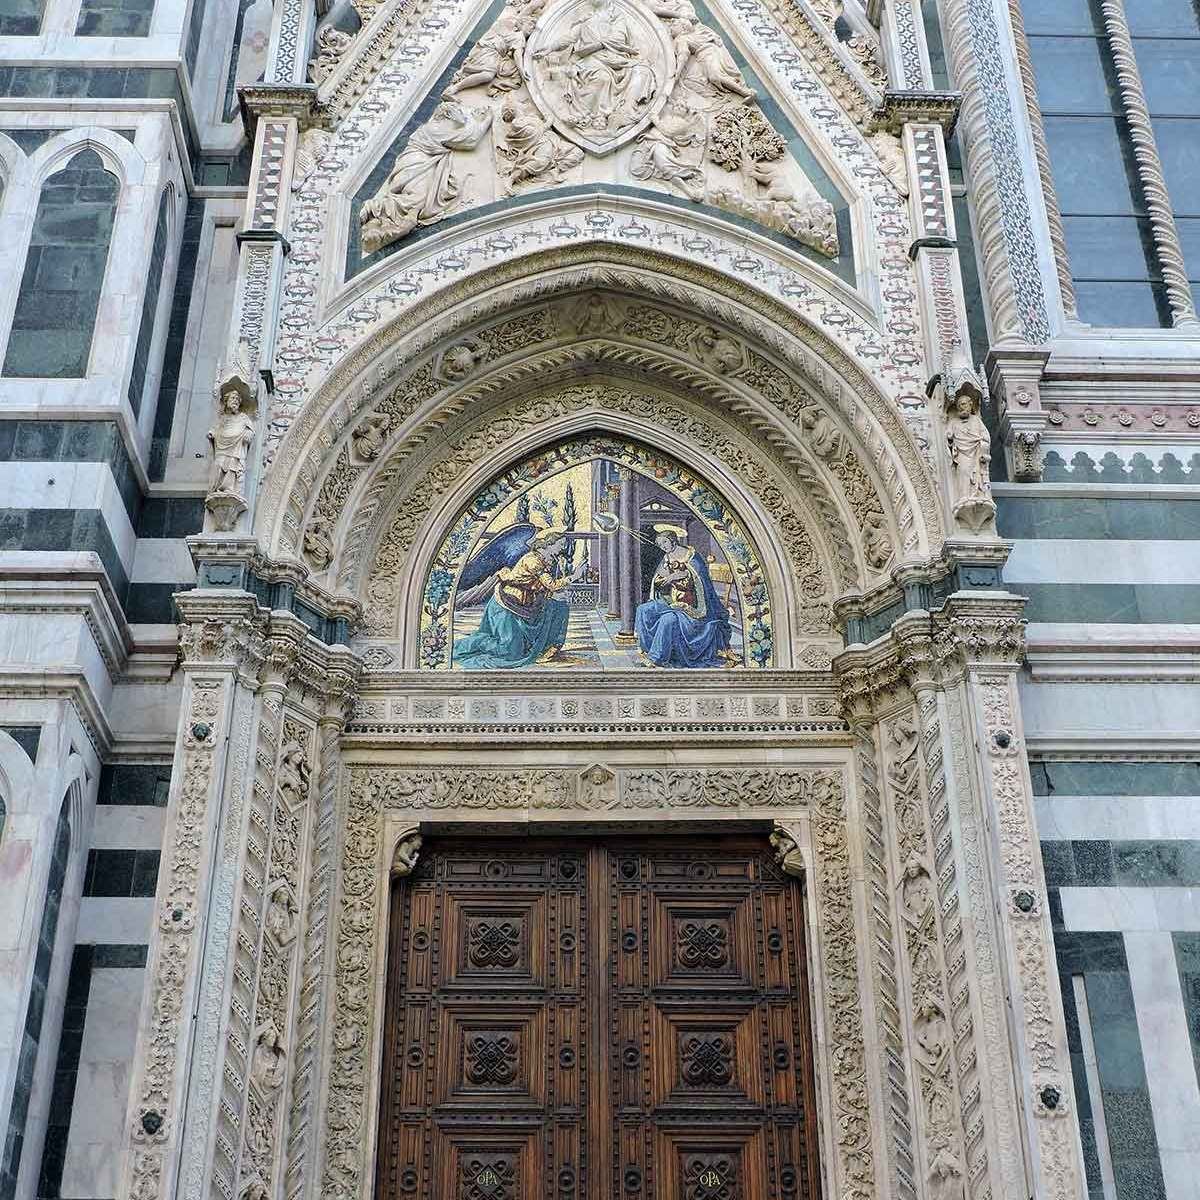 Details of the Duomo door in Florence